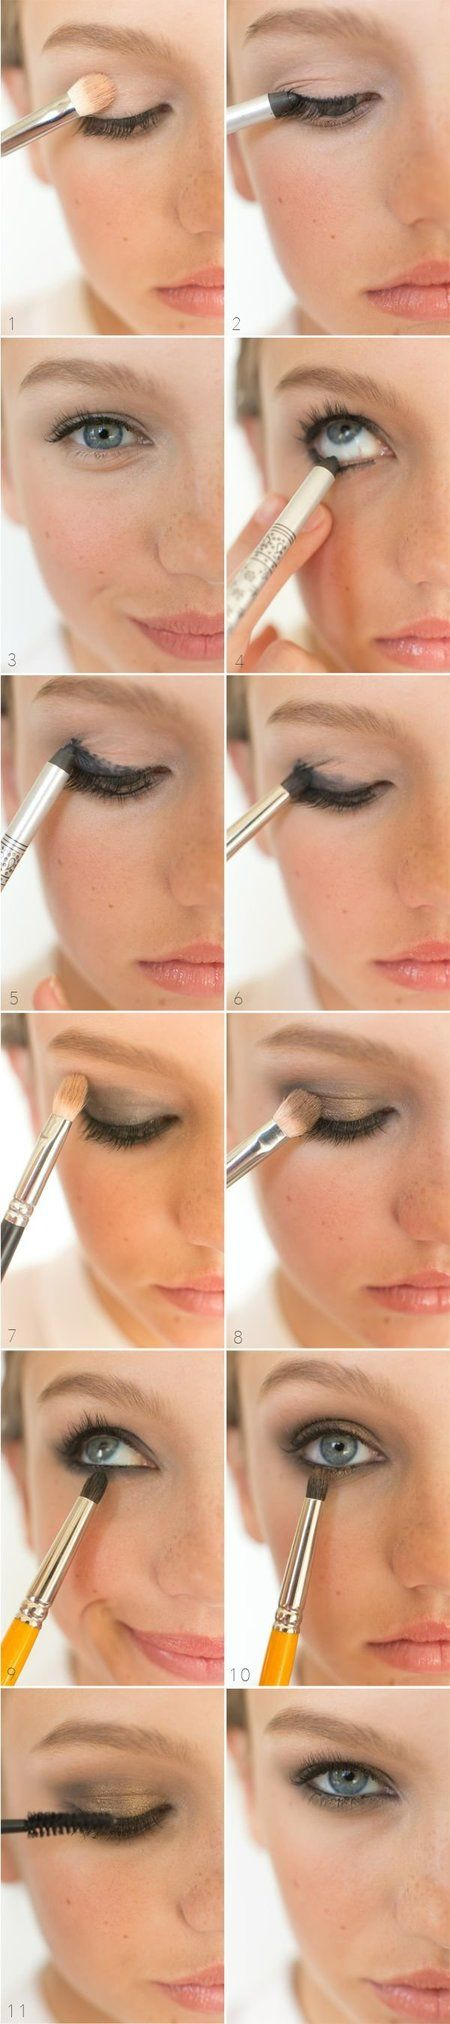 Natural smokey eyes! - #eyemakeup #tutorial #howto - For more beauty how-to's or to share yours check out bellashoot.com